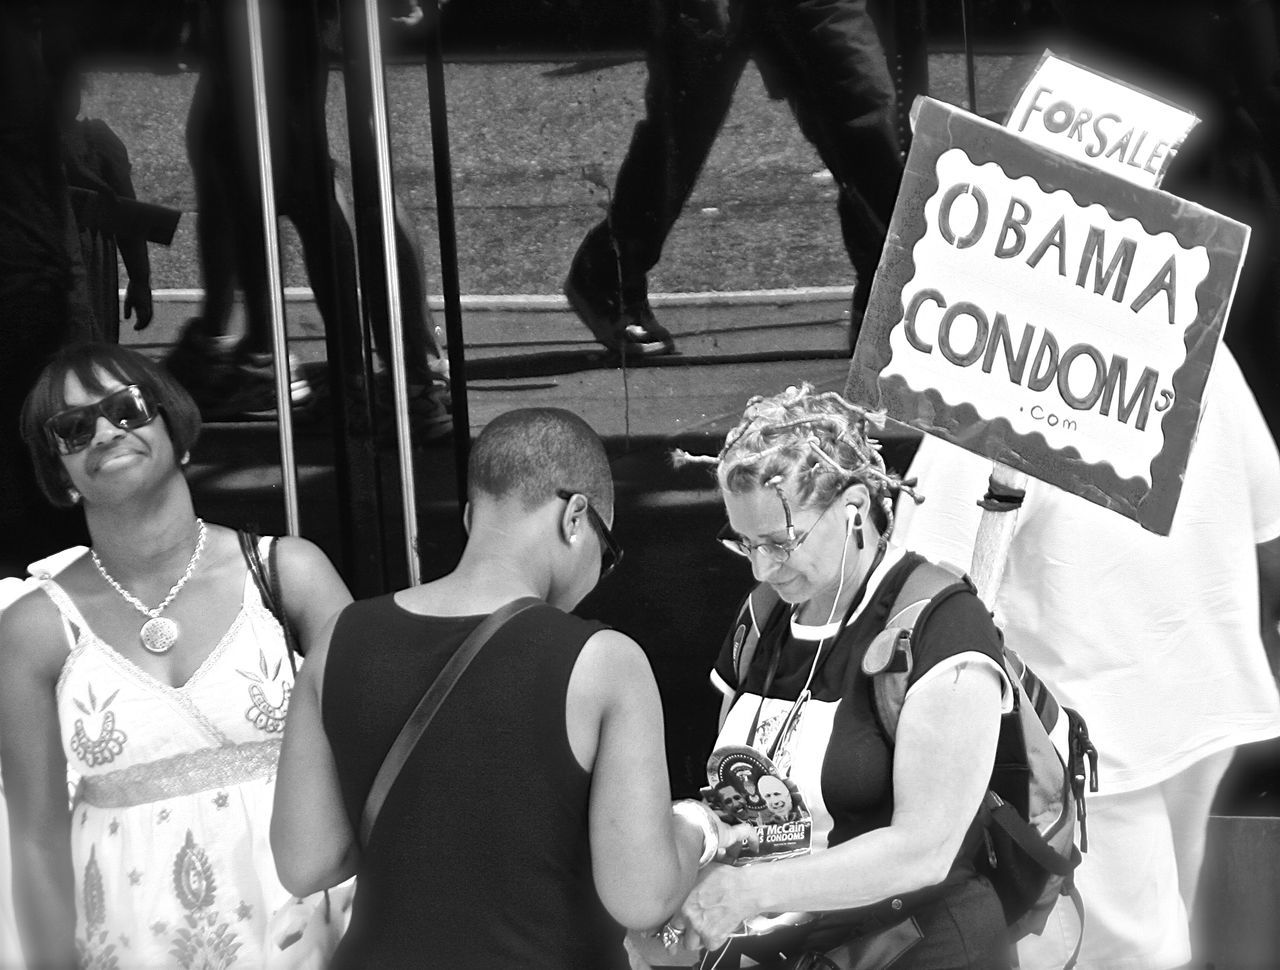 Communication Condom Day Men Obama Outdoors People Real People Text The Street Photographer - 2017 EyeEm Awards